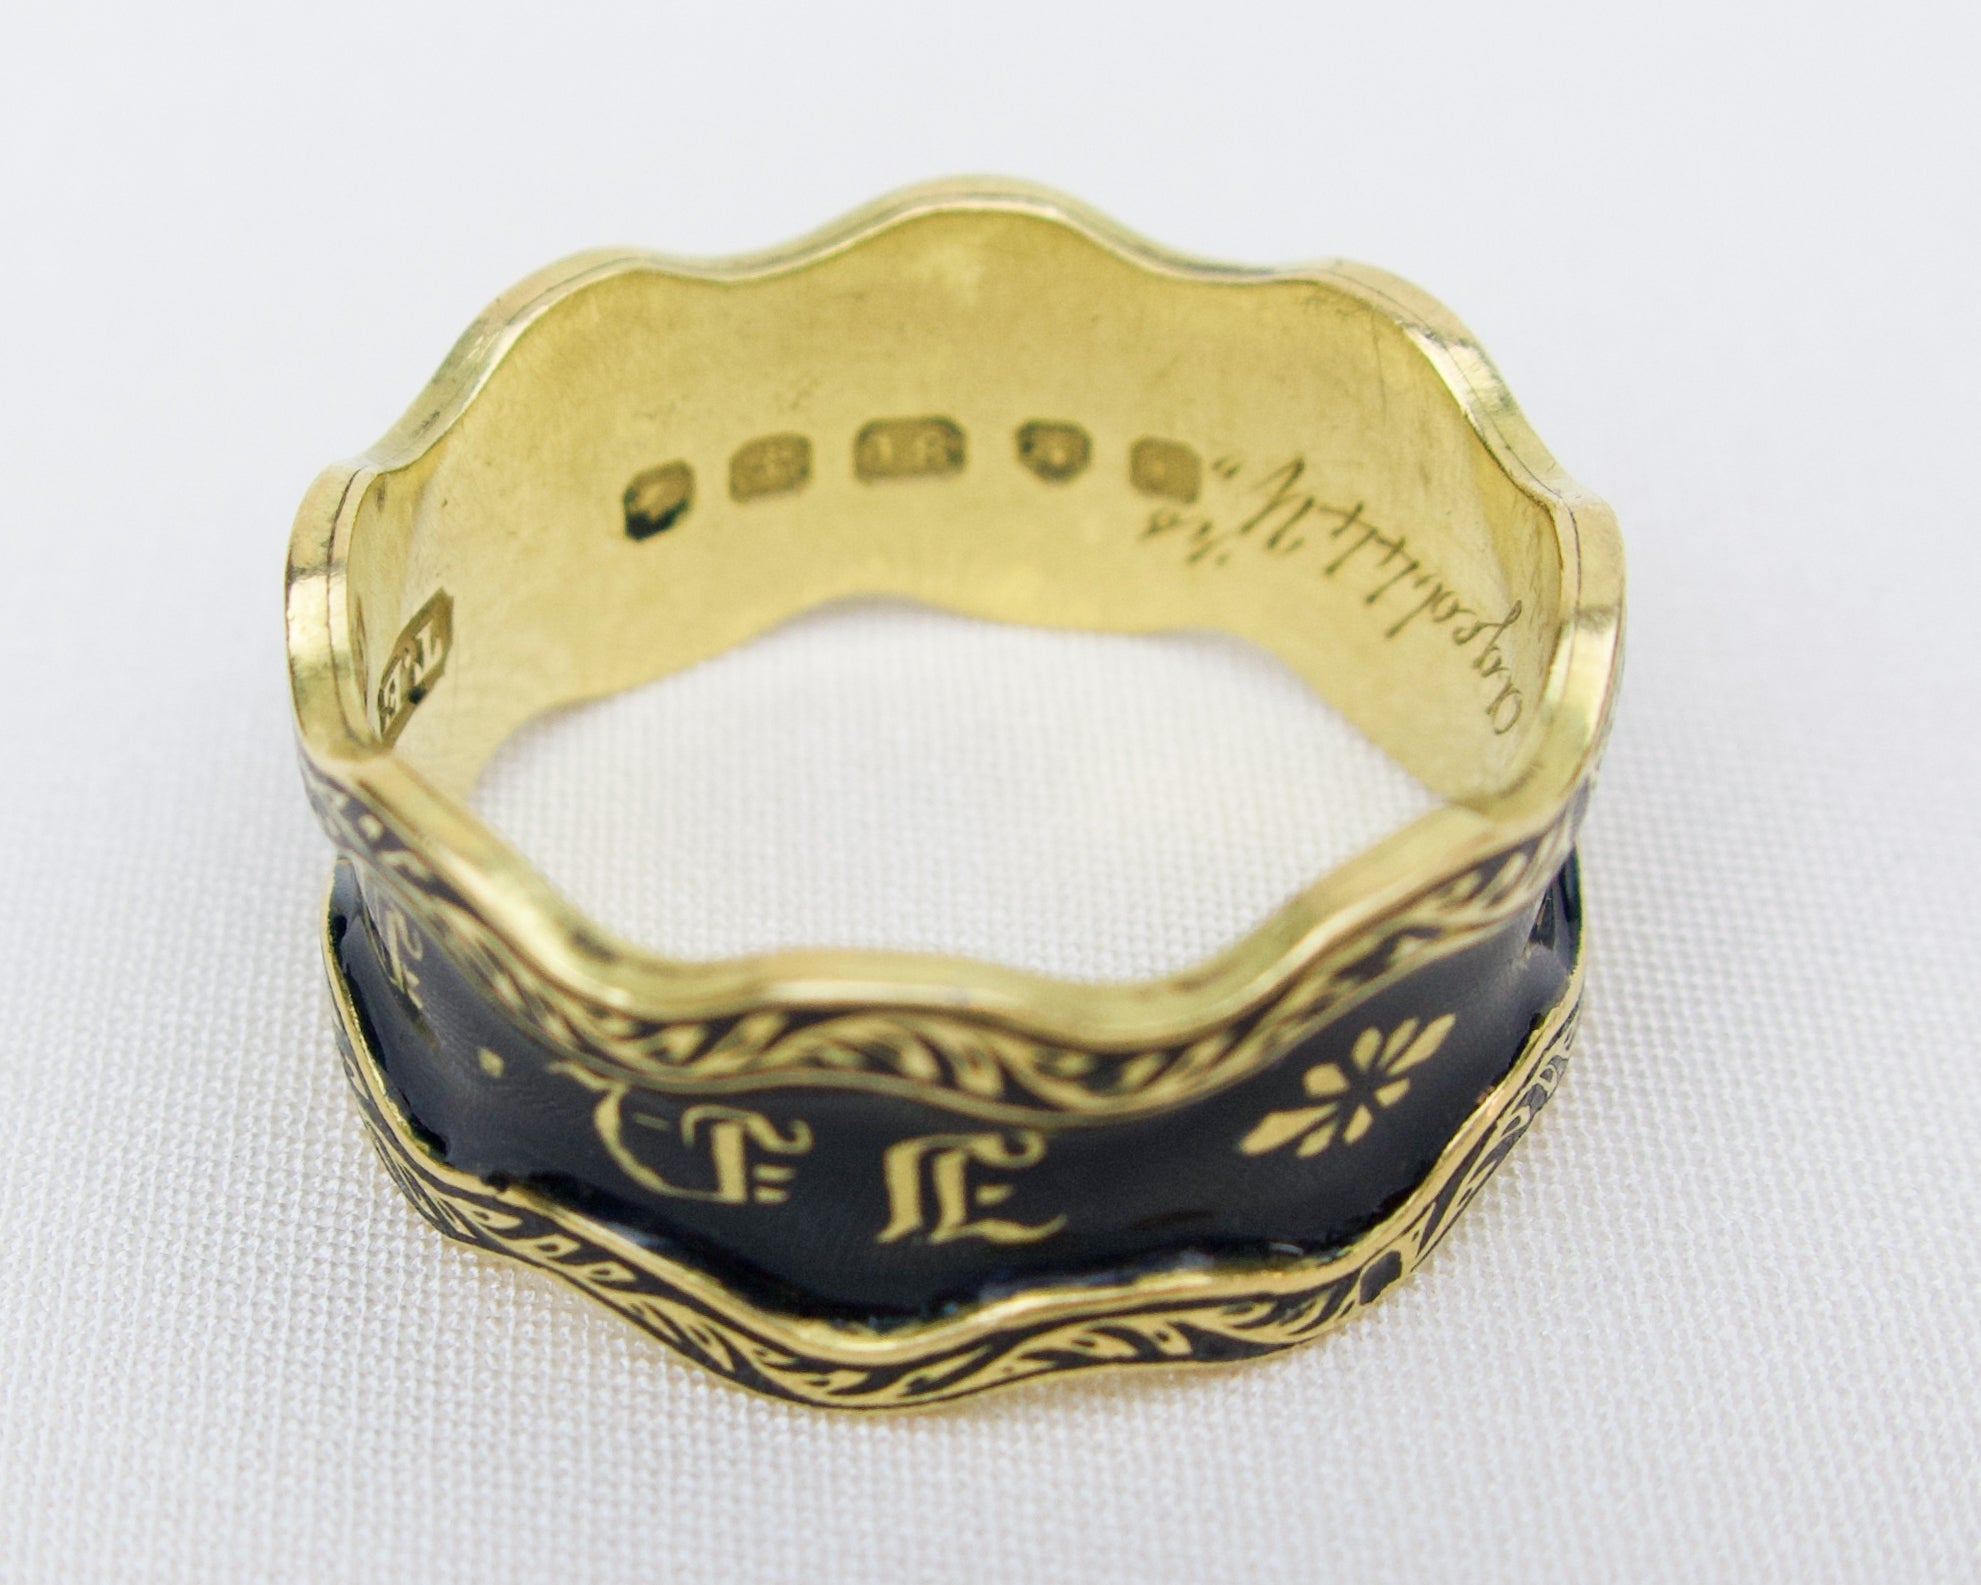 Early Victorian 18KT Memorial Band